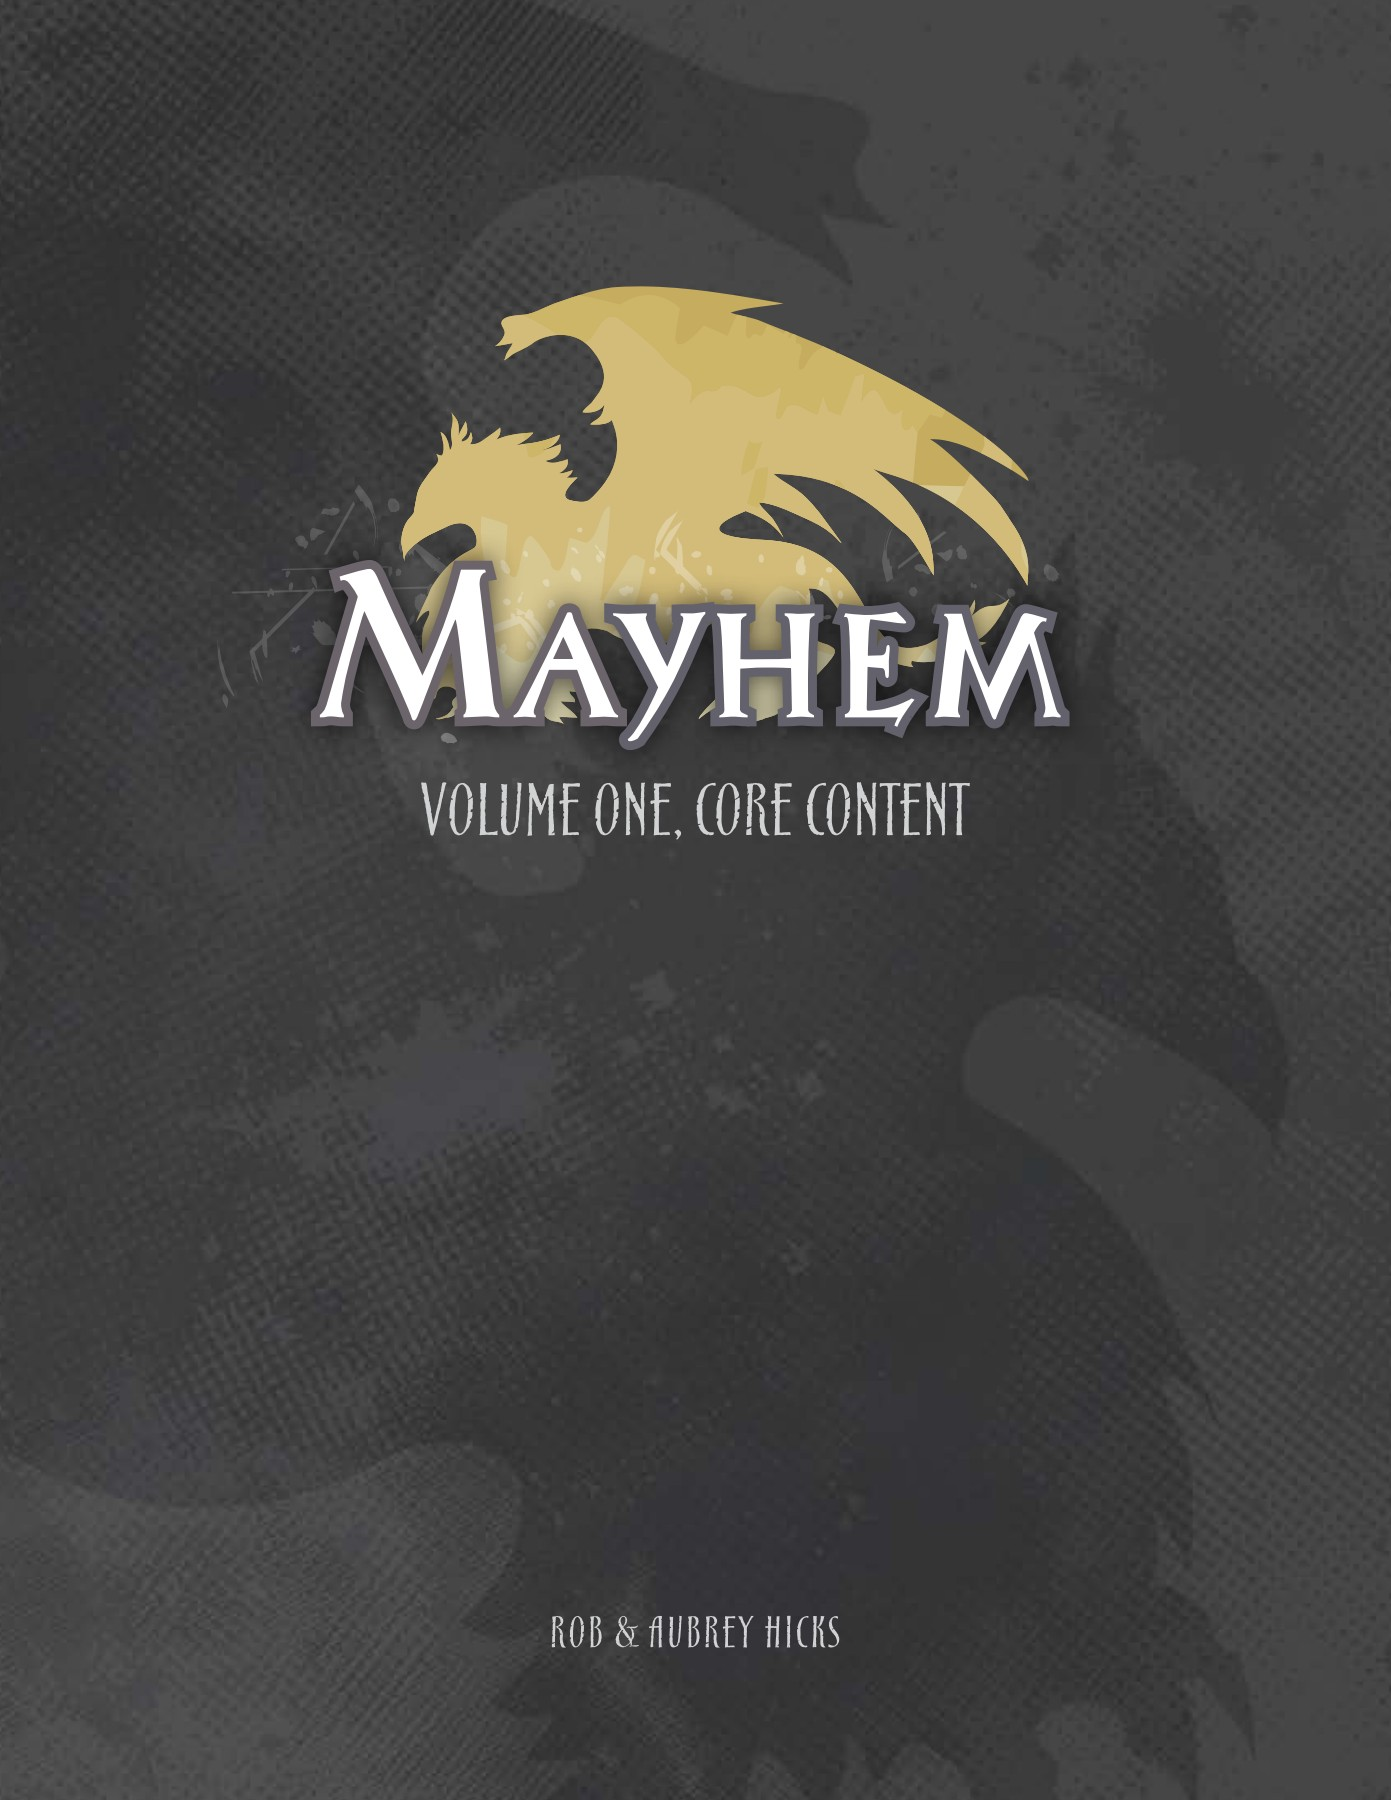 Mayhem - Midnight Campaign Games Pages 1 - 20 - Text Version | AnyFlip